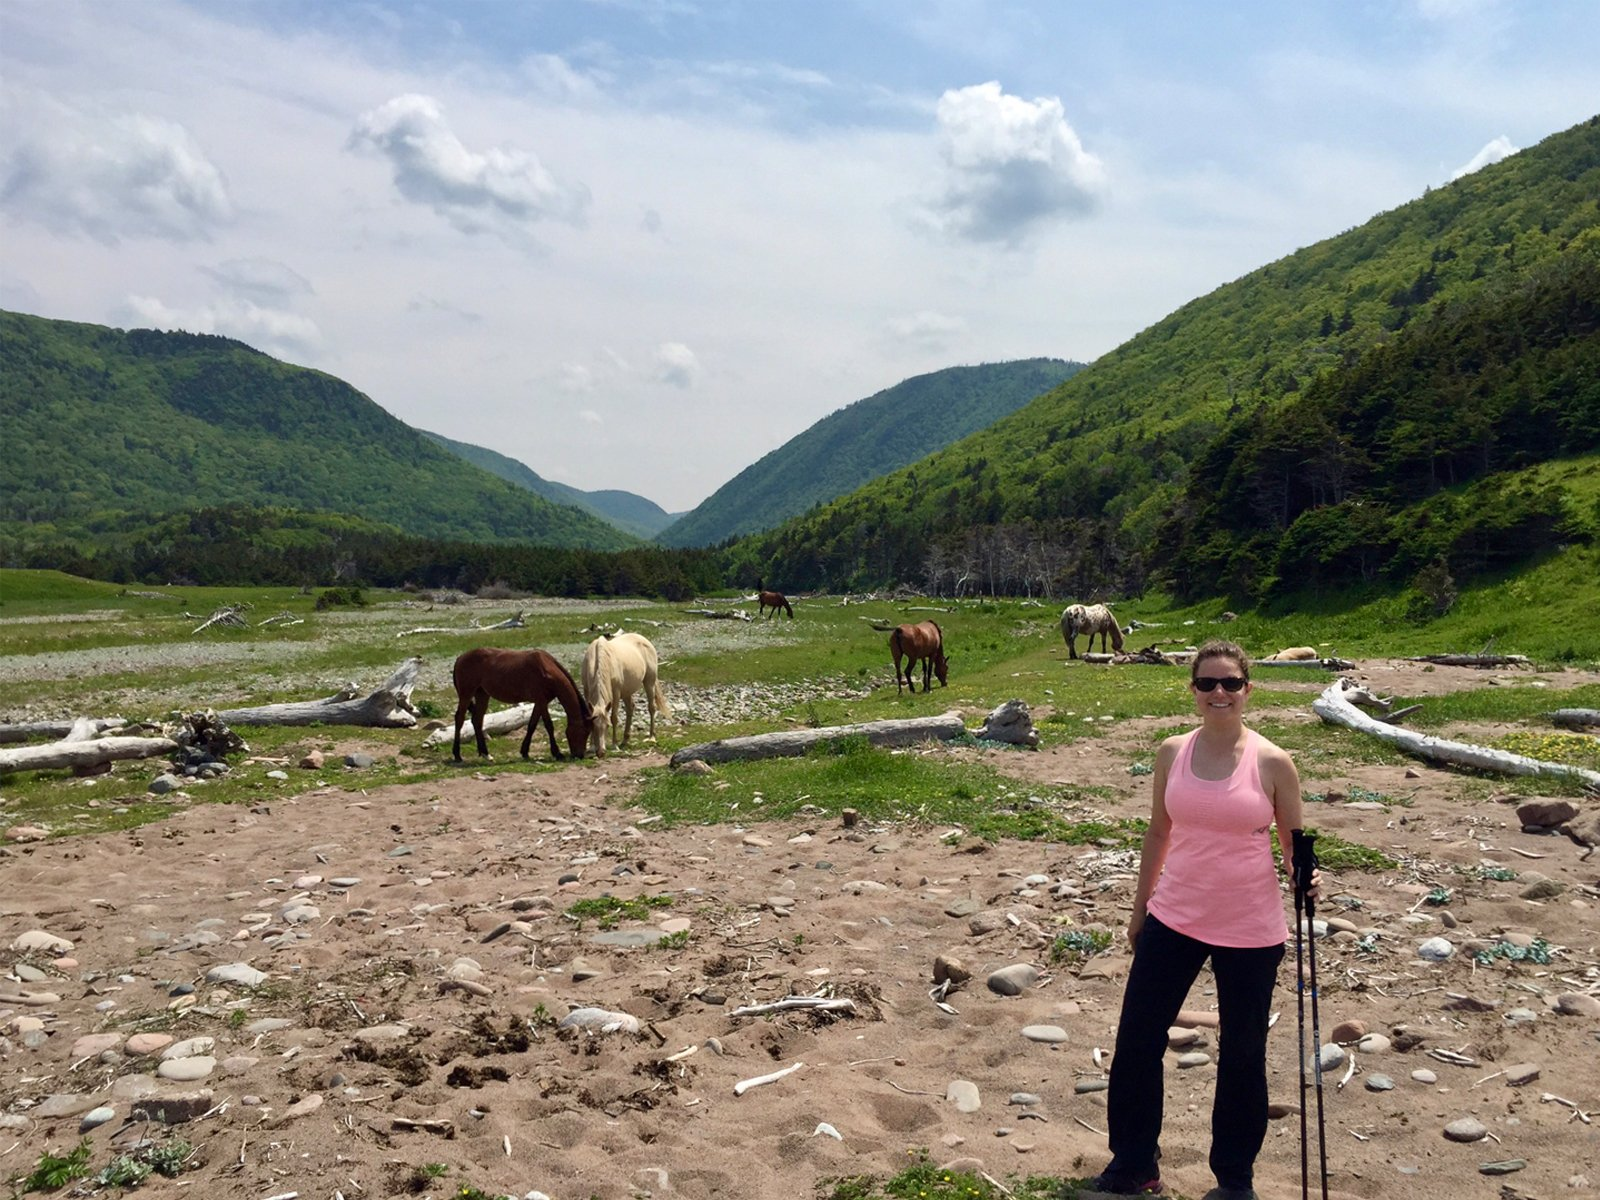 hiker standing next to wild horses in Pollets Cove, Cape Breton Island, Nova Scotia